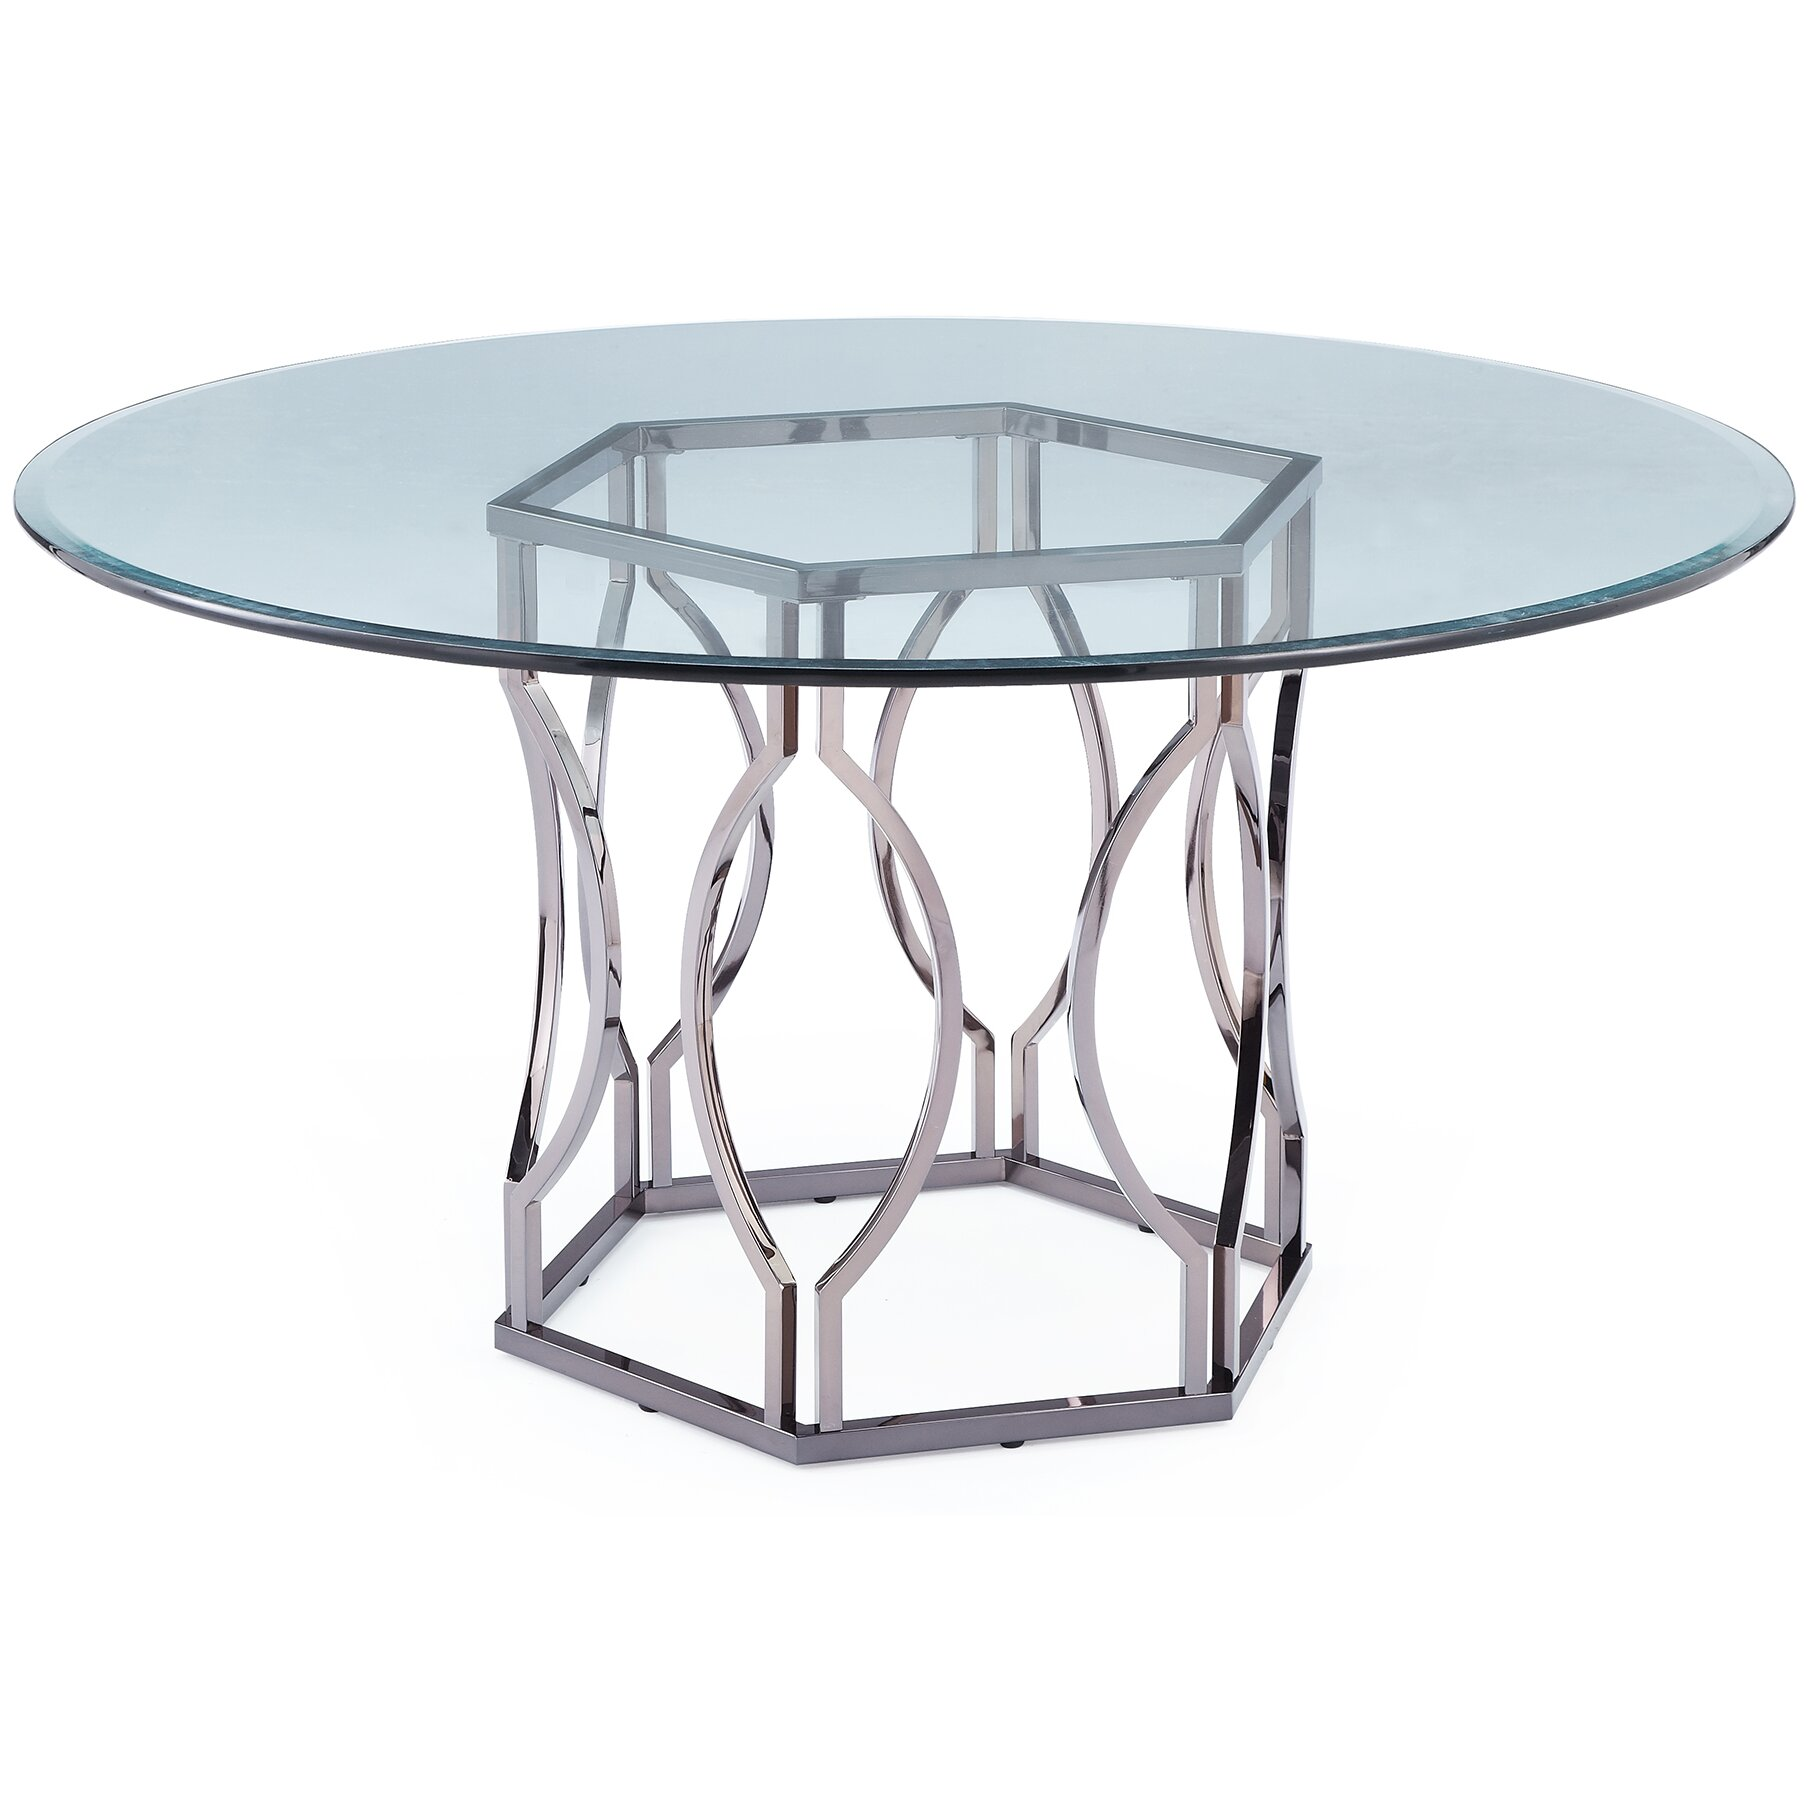 Mercer41 Viggo Round Glass Dining Table amp Reviews Wayfair : Mercer41 Viggo Round Glass Dining Table from www.wayfair.com size 1808 x 1808 jpeg 239kB